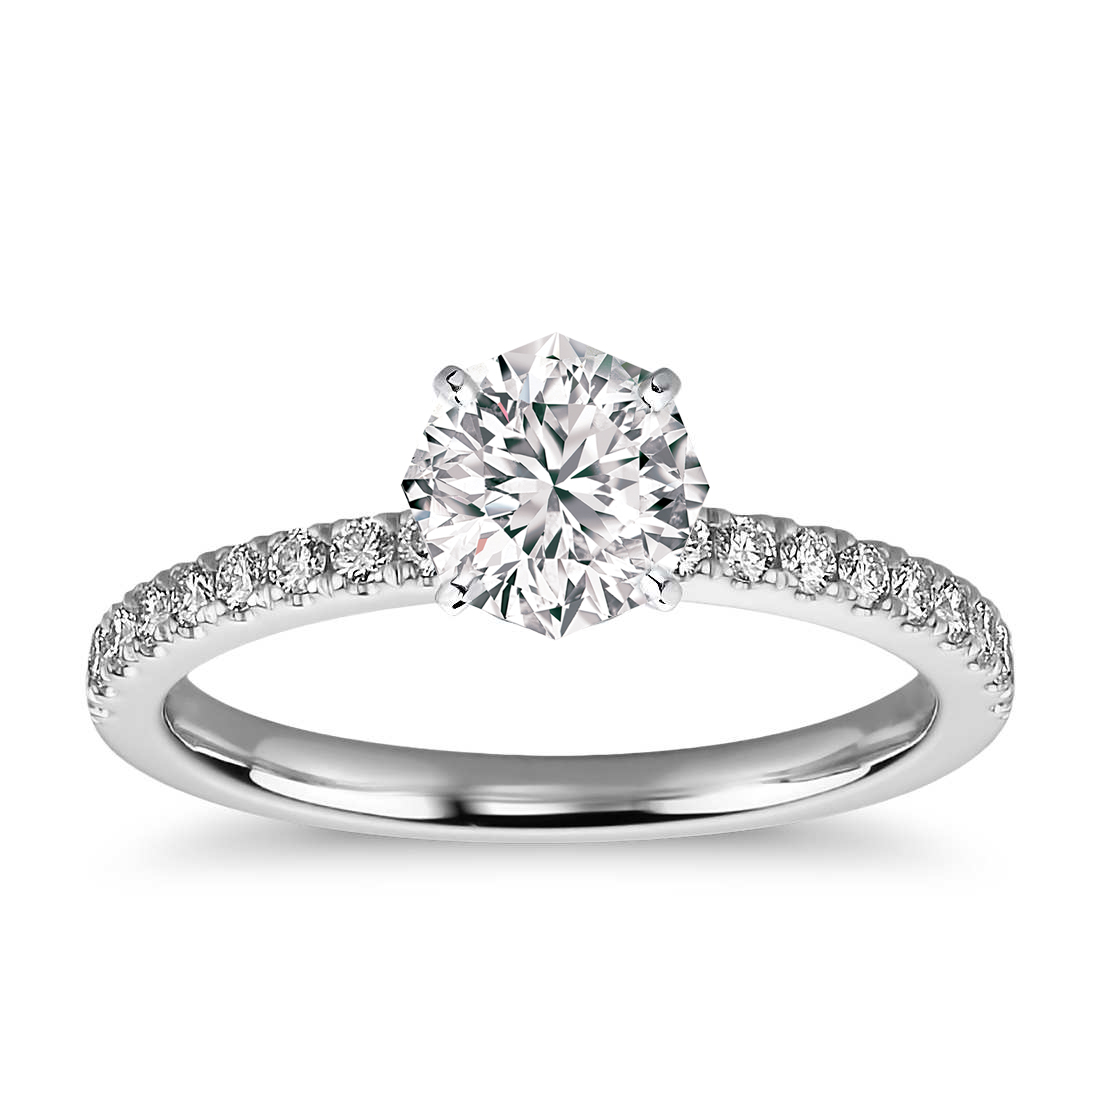 88-cut-solitaire-pave-ring.jpg